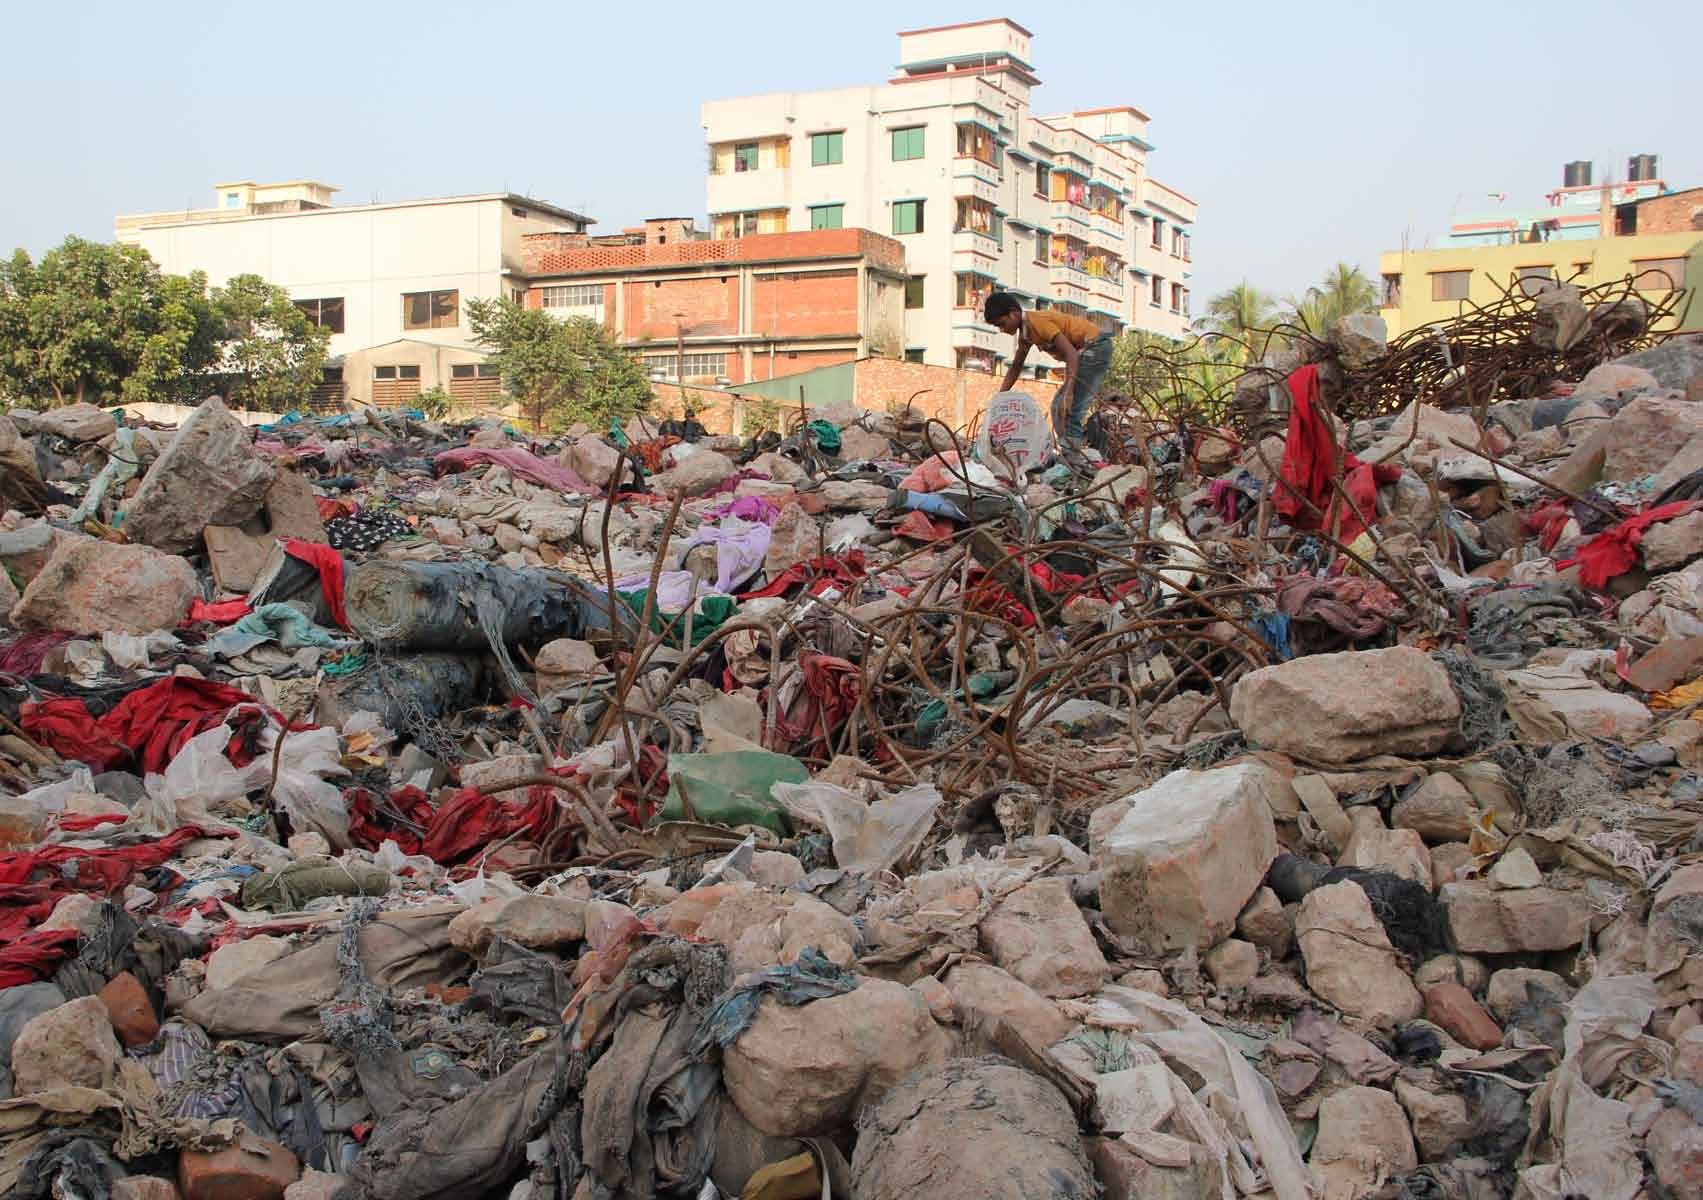 BISHAWJIT DAS Ten months after the collapse at Rana Plaza, bolts of fabric, pieces of finished garments, documents, building materials, and rebar from the factories that were located in the complex